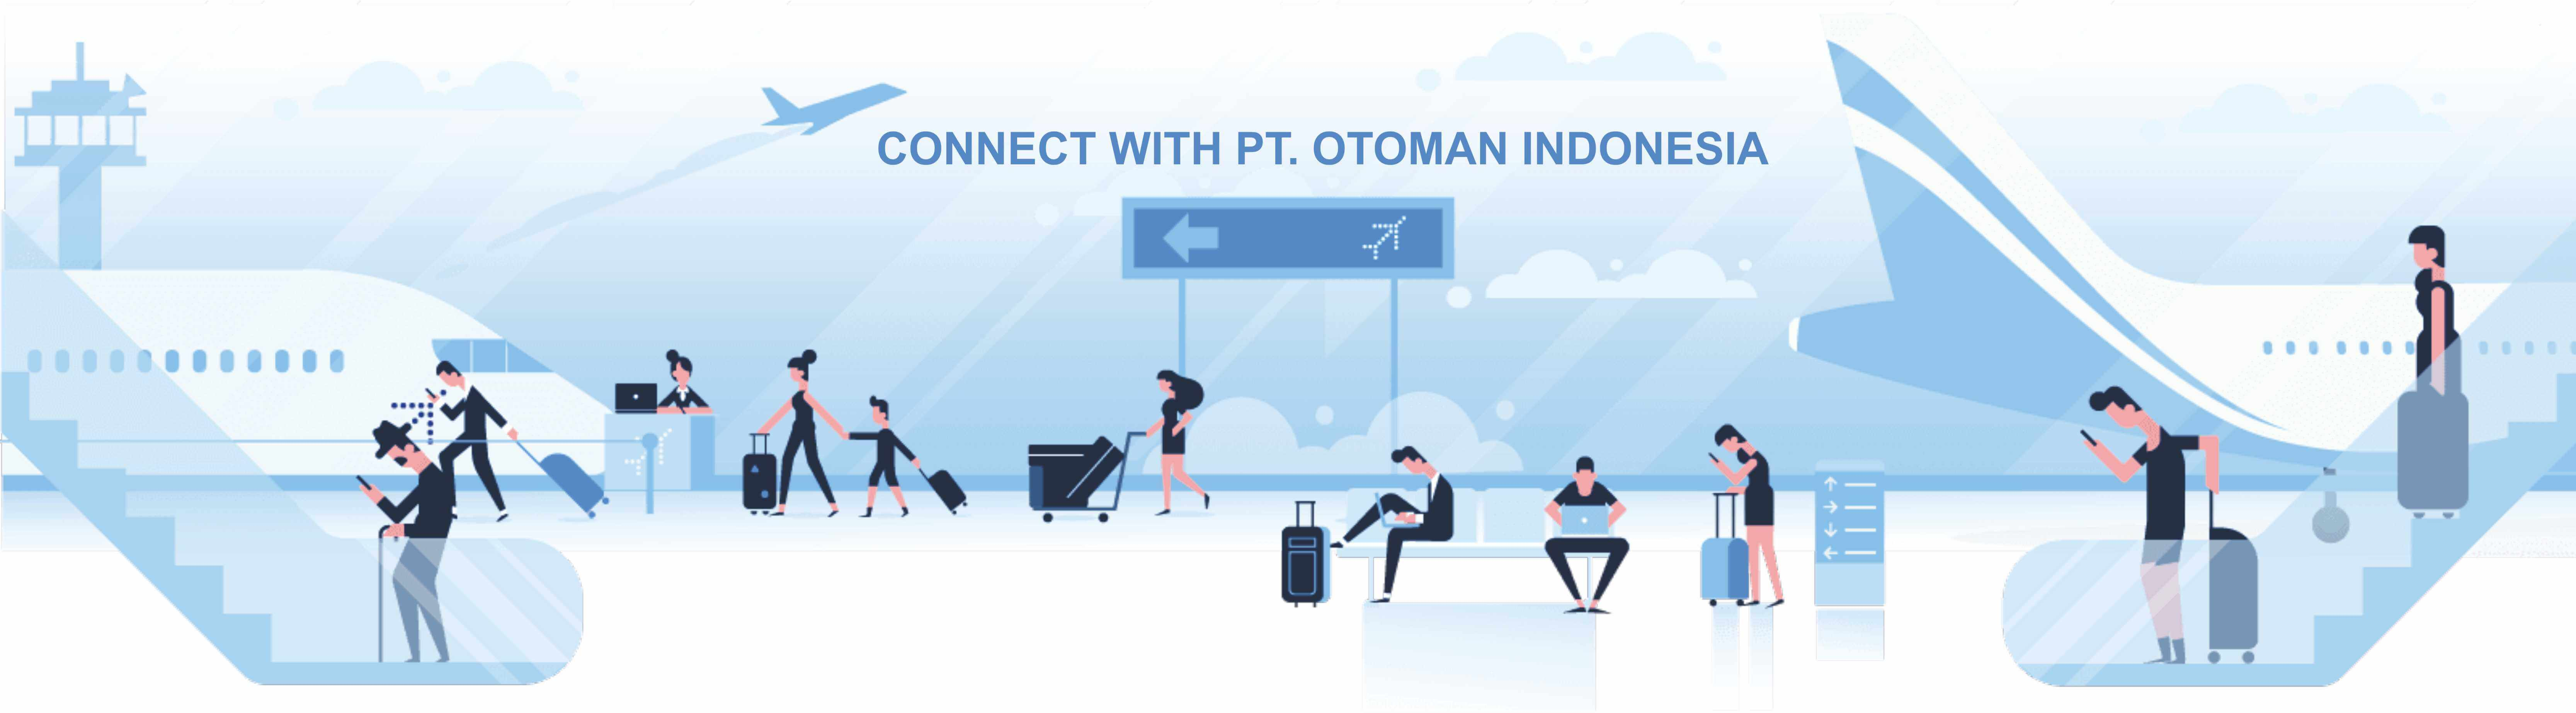 Contact with PT. OTOMAN INDONESIA